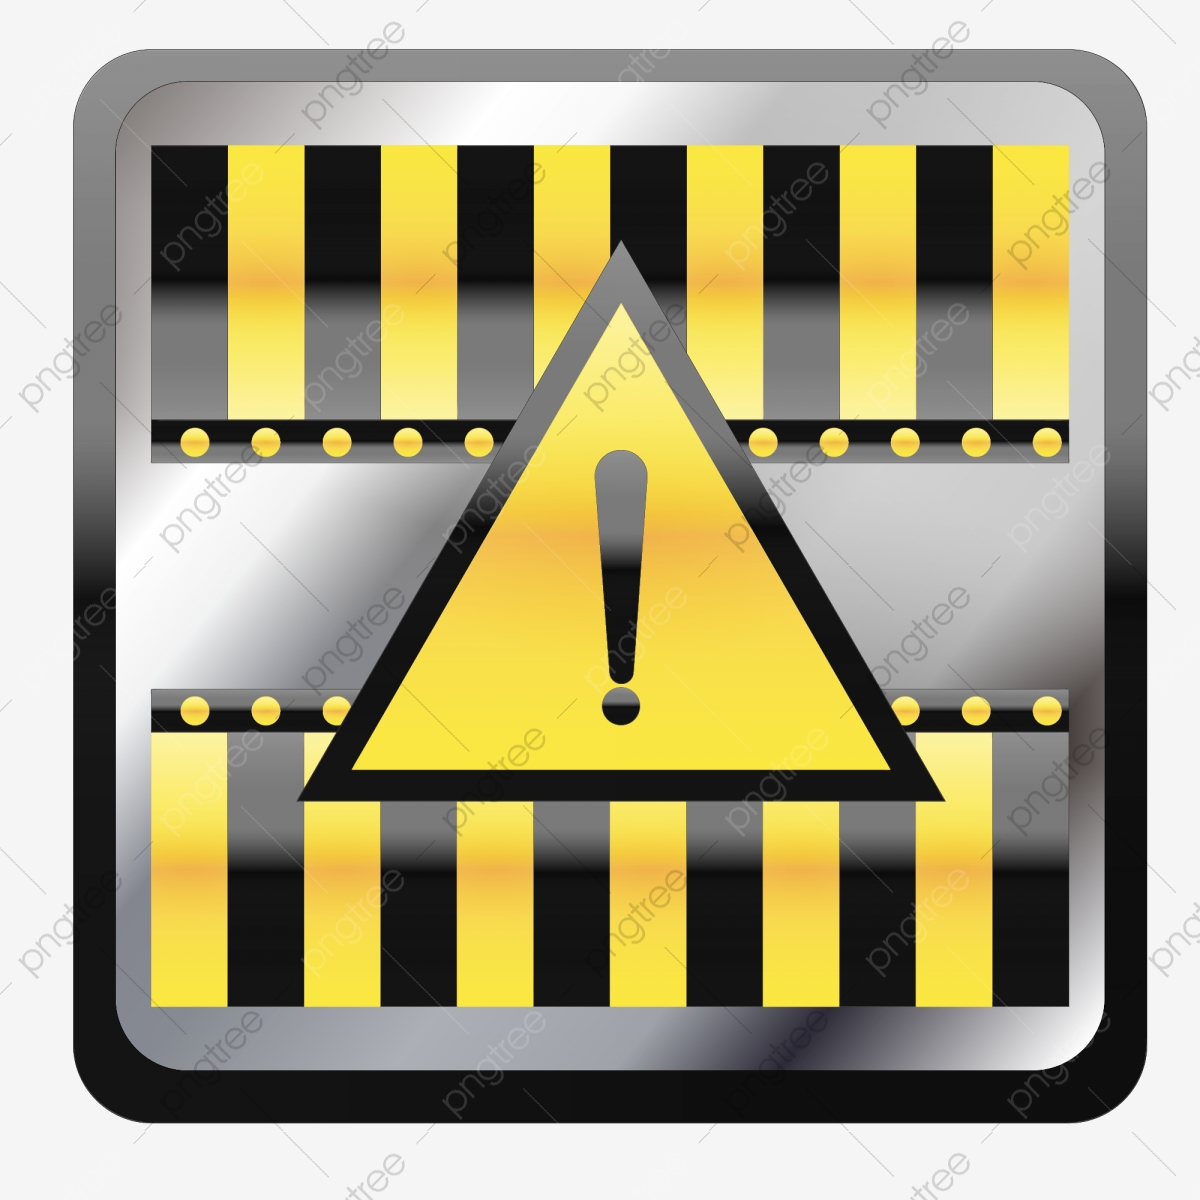 Pay Attention To Safety Pictures Attention Clipart Attention Safety Signage Png And Vector With Transparent Background For Free Download